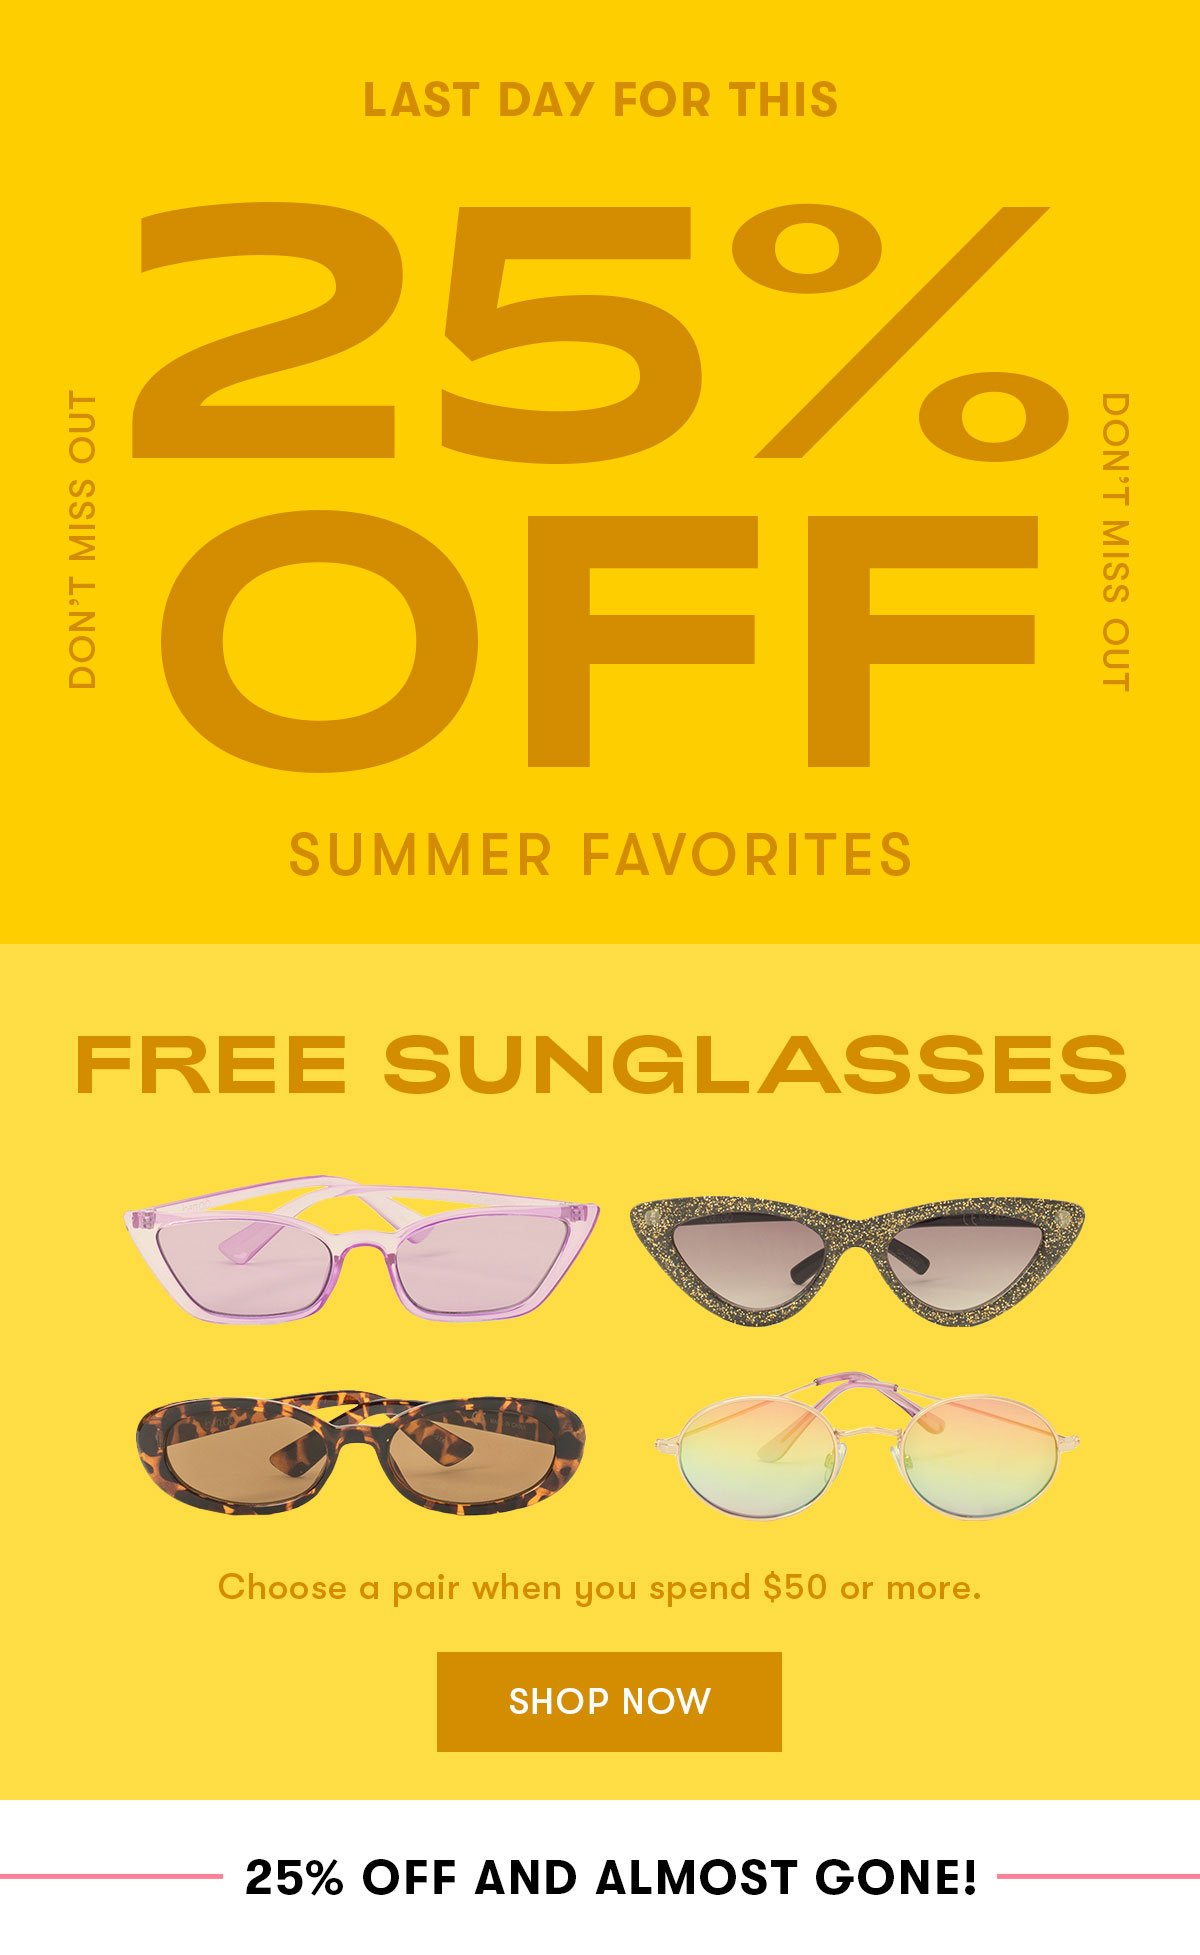 Last day for this. 25% off summer favorites and free sunglasses when you spend $50 or more.